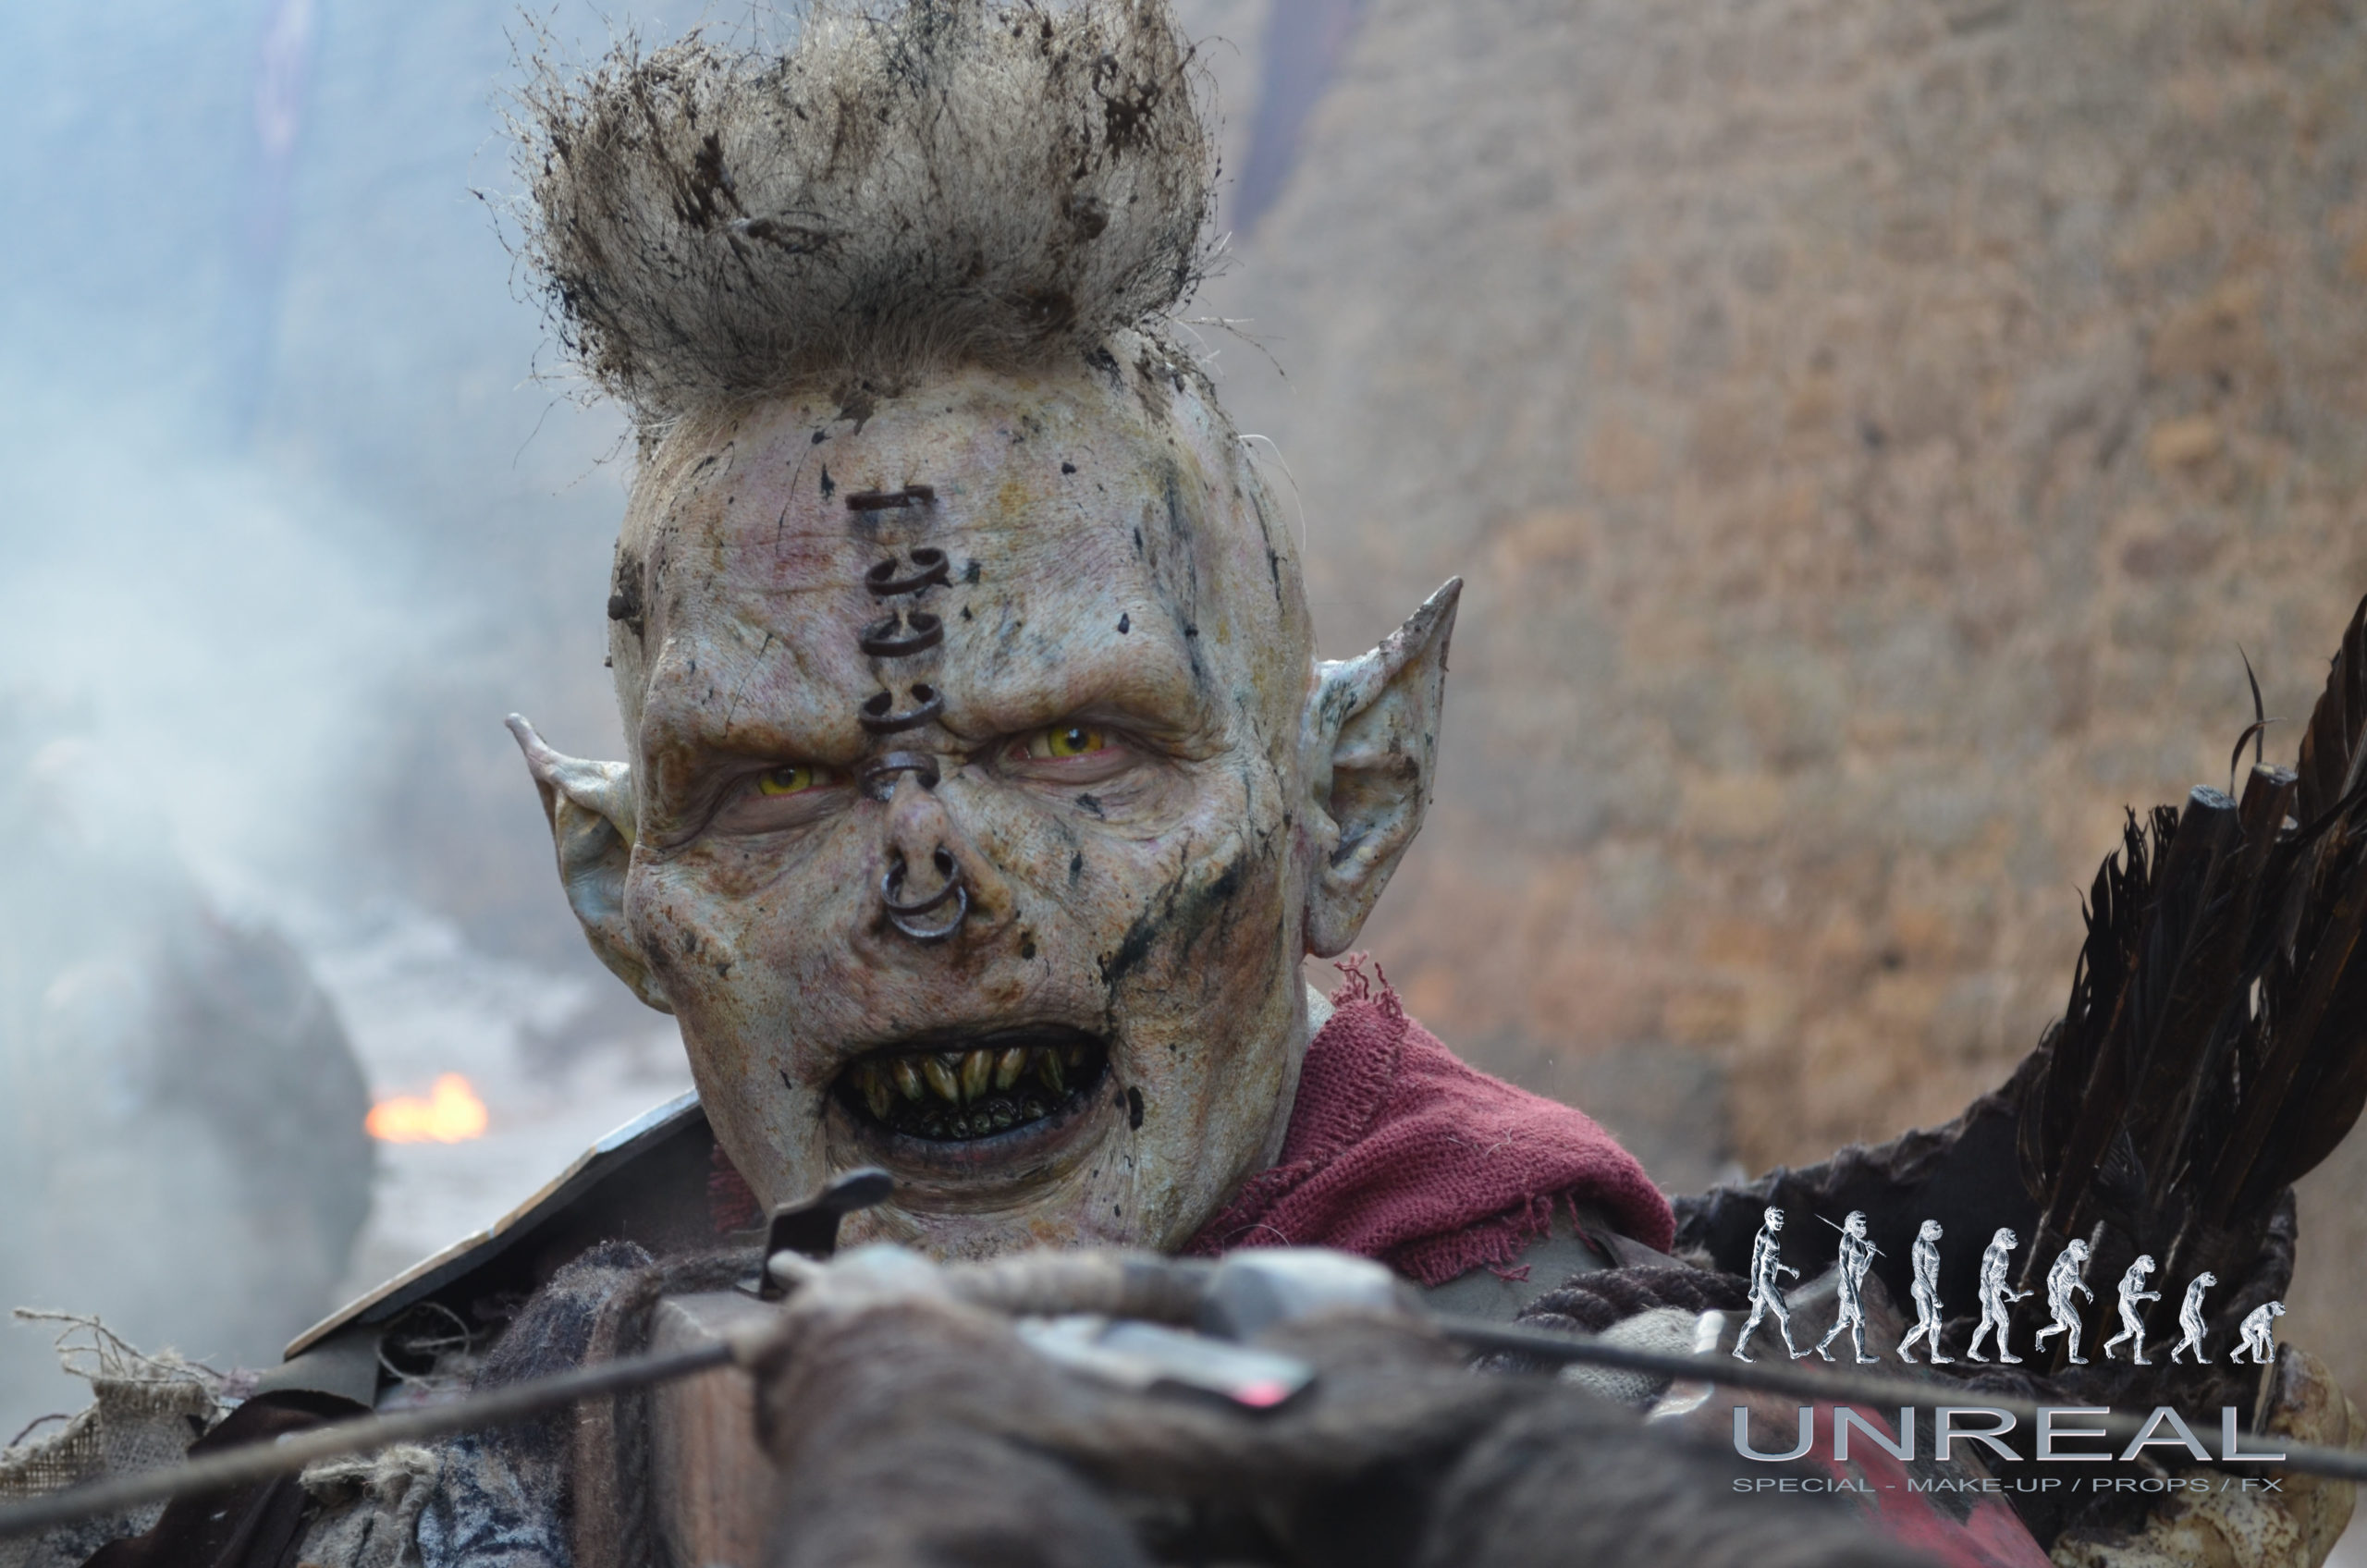 Shadow of War orc KHROSH designed and created by Unreal.eu